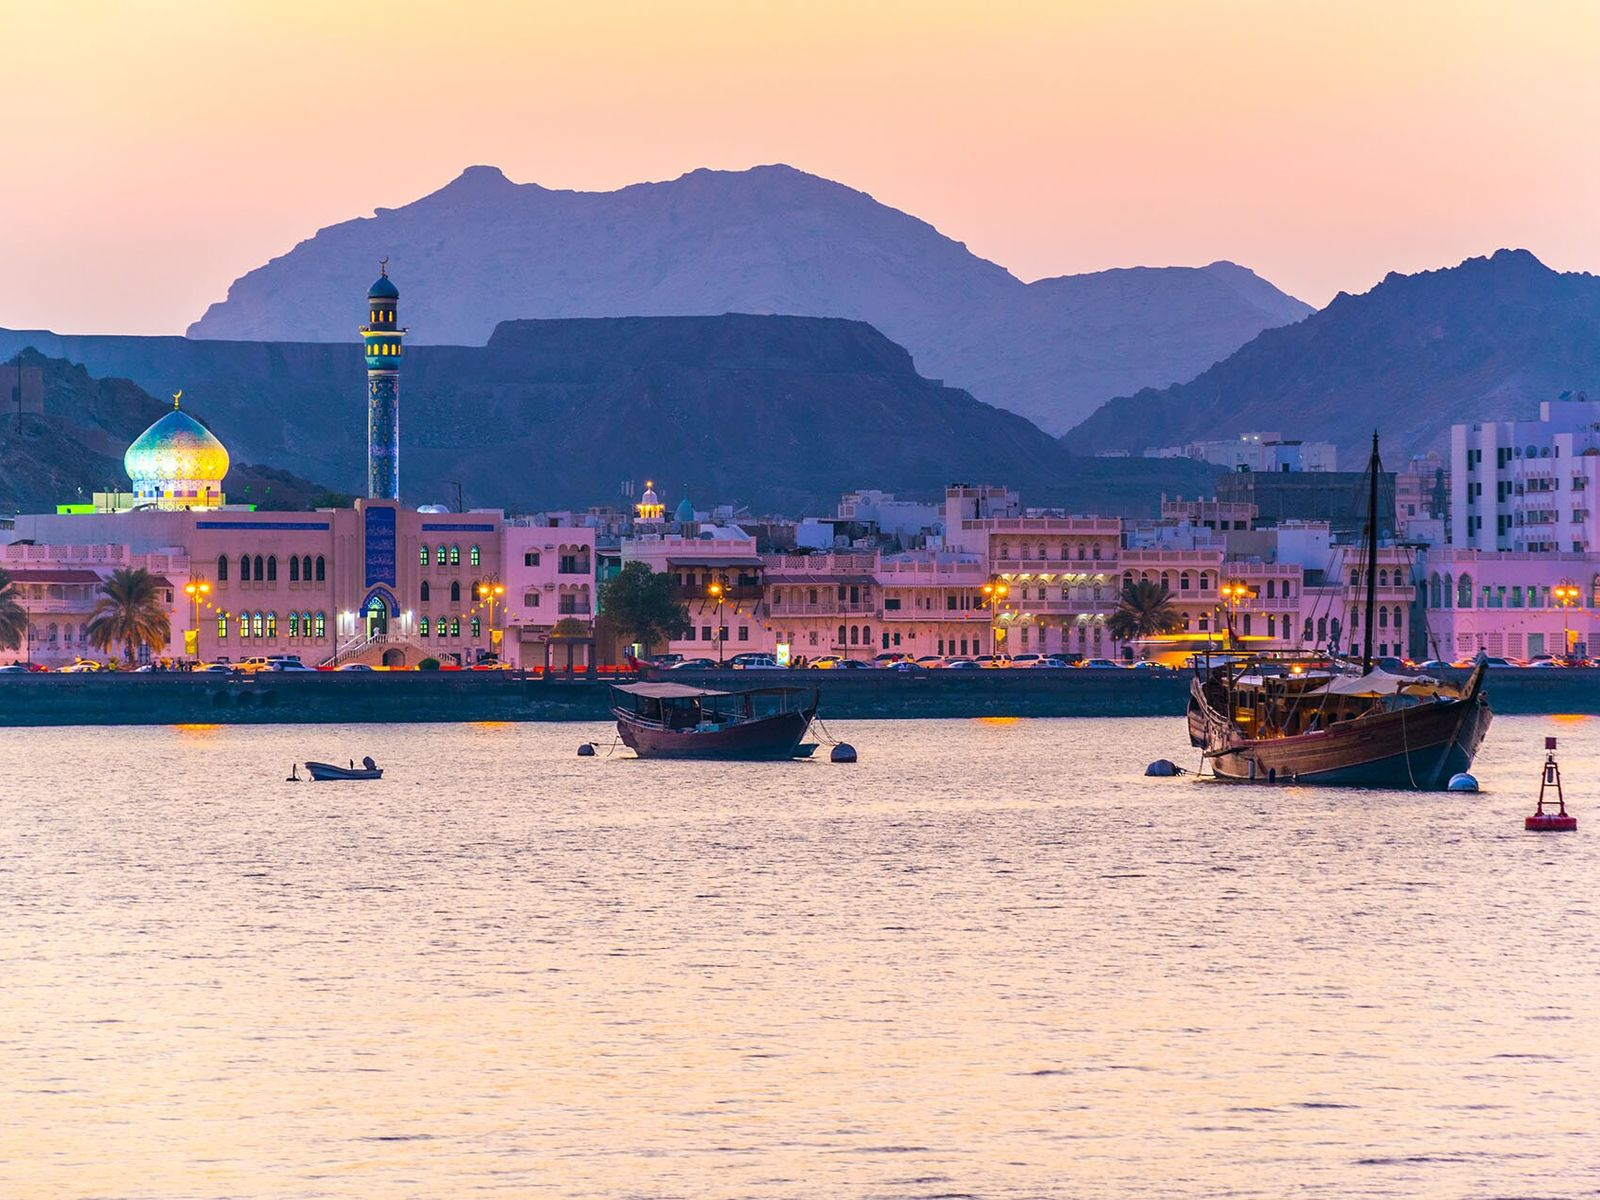 Muscat means 'safe anchorage,' and the capital's famous port plays an important role in Oman's economy.